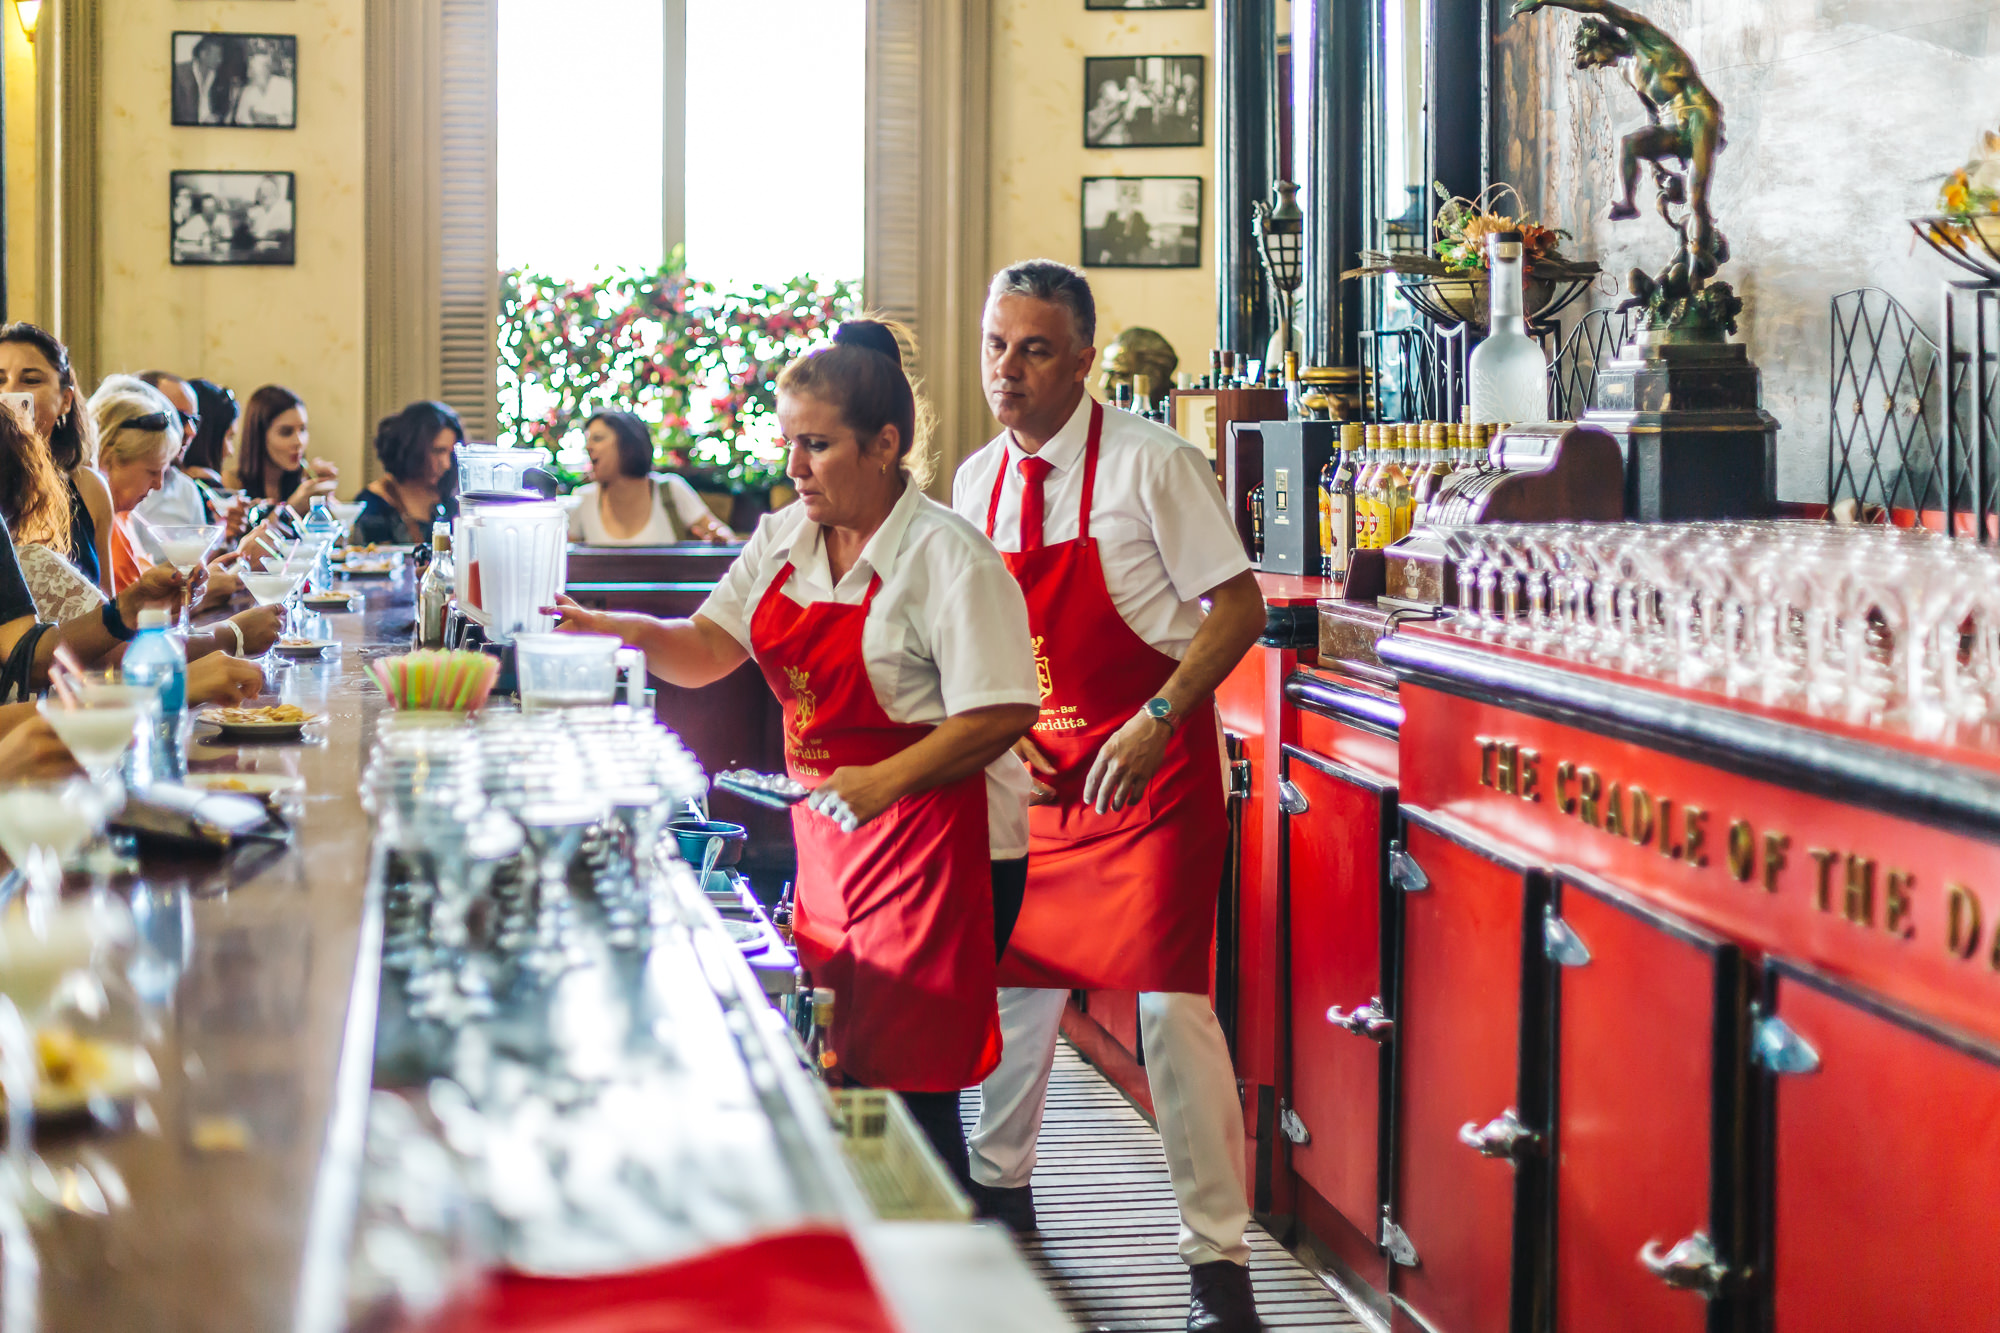 Floridita still preserves much of the atmosphere from the 1940s and 1950s